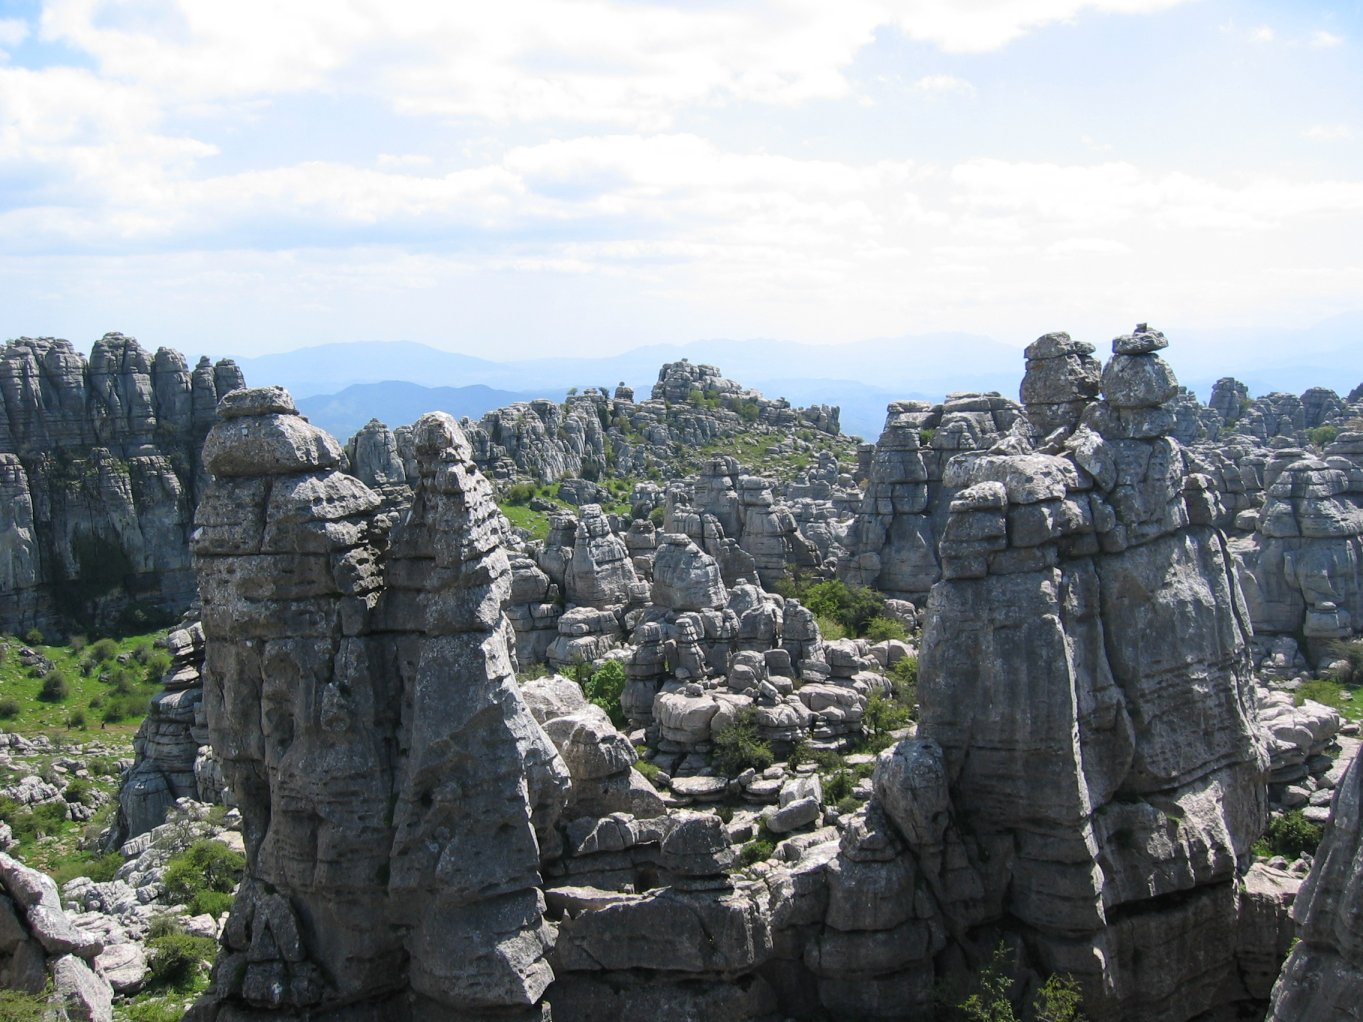 http://www.pvv.org/~erikad/Themepages/Travel/Andalucia/general/torcal.jpg